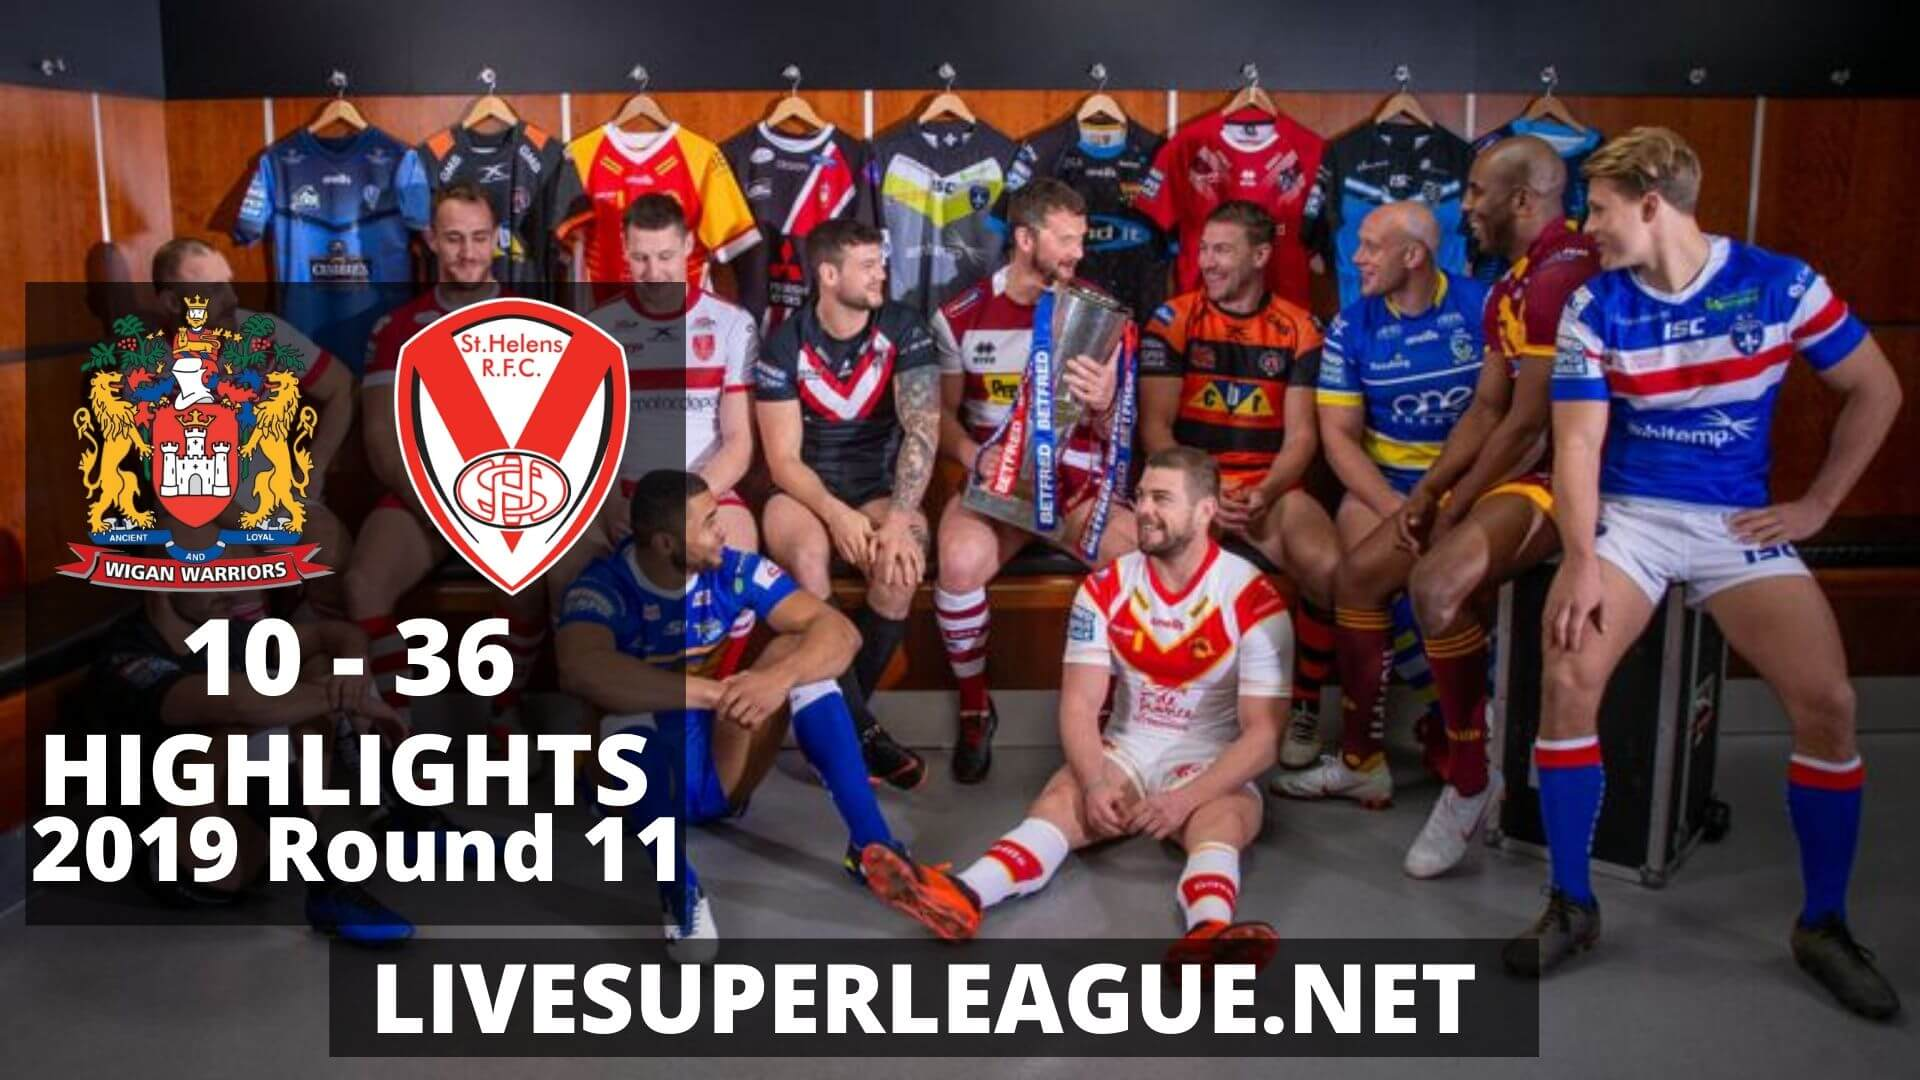 Wigan Warriors Vs St Helens Highlights 2019 Round 11